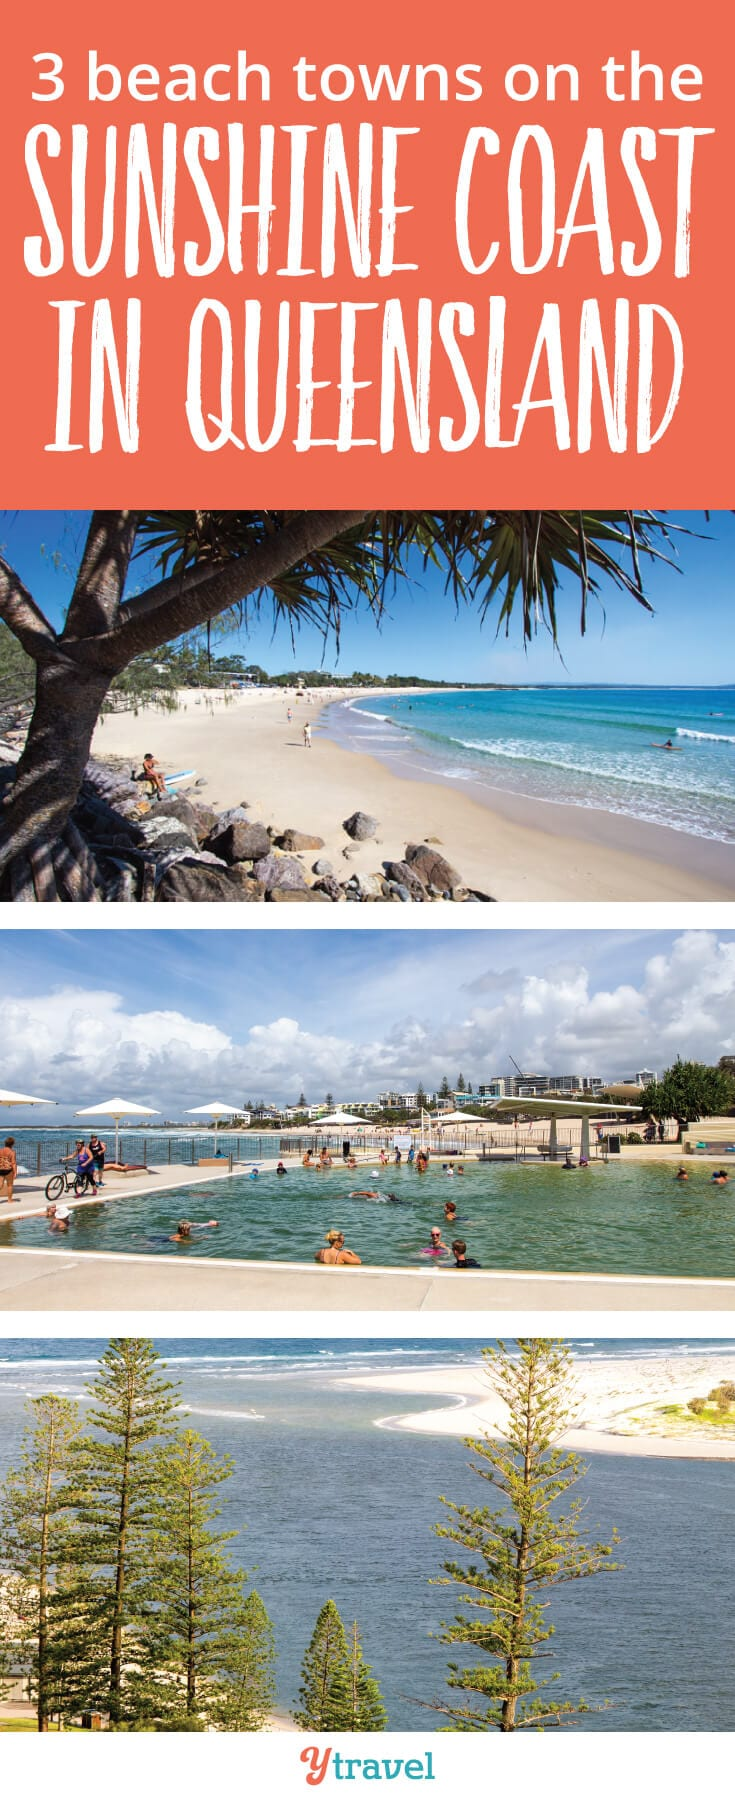 We are sharing 3 beach towns on the Sunshine Coast in Queensland that we absolutely love!